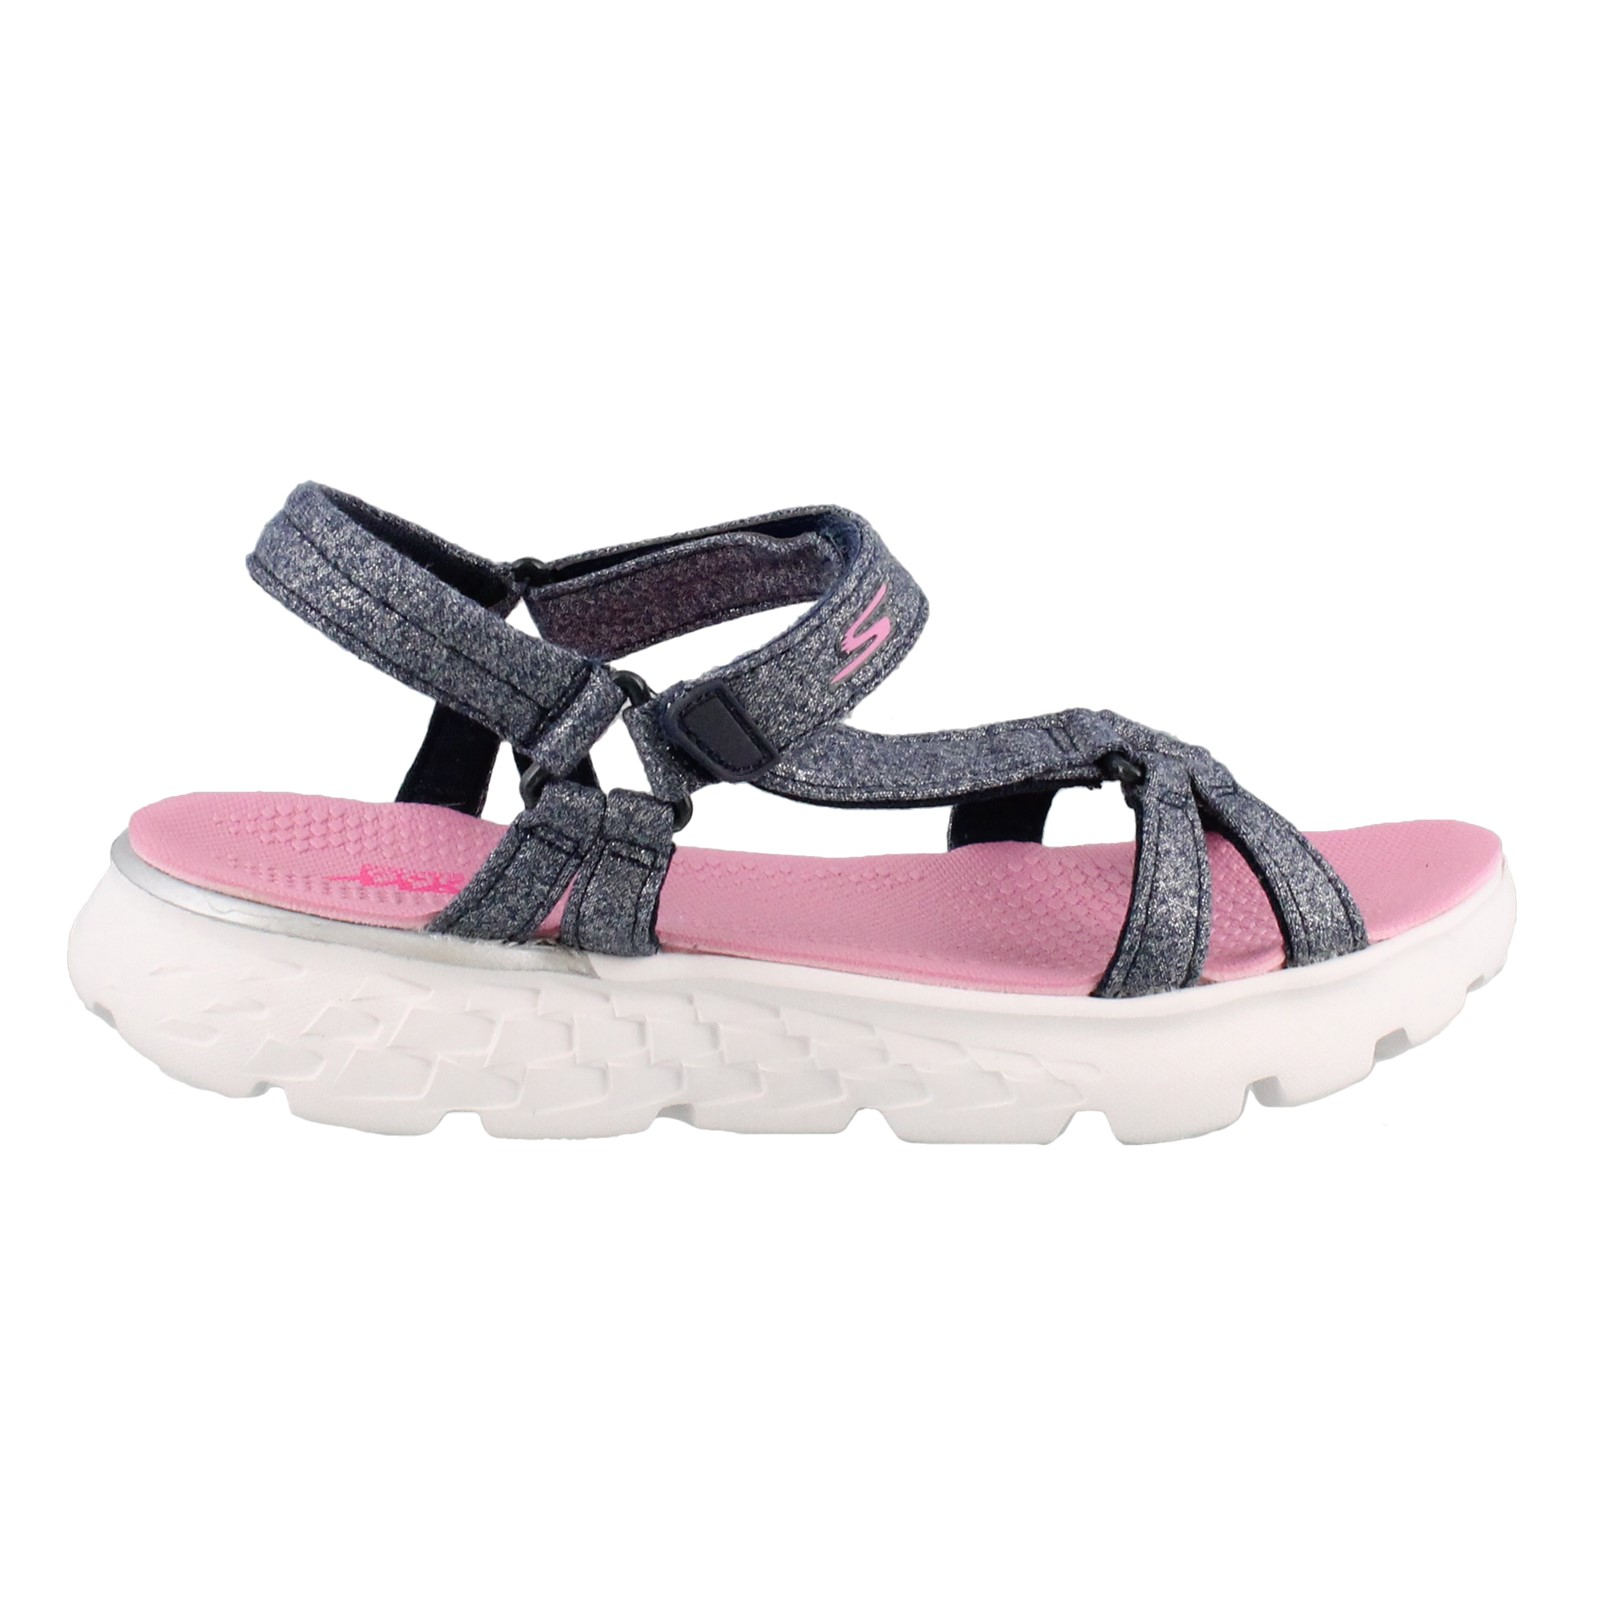 Girl's Skechers, On The Go 400 Lil Radiance Sandals